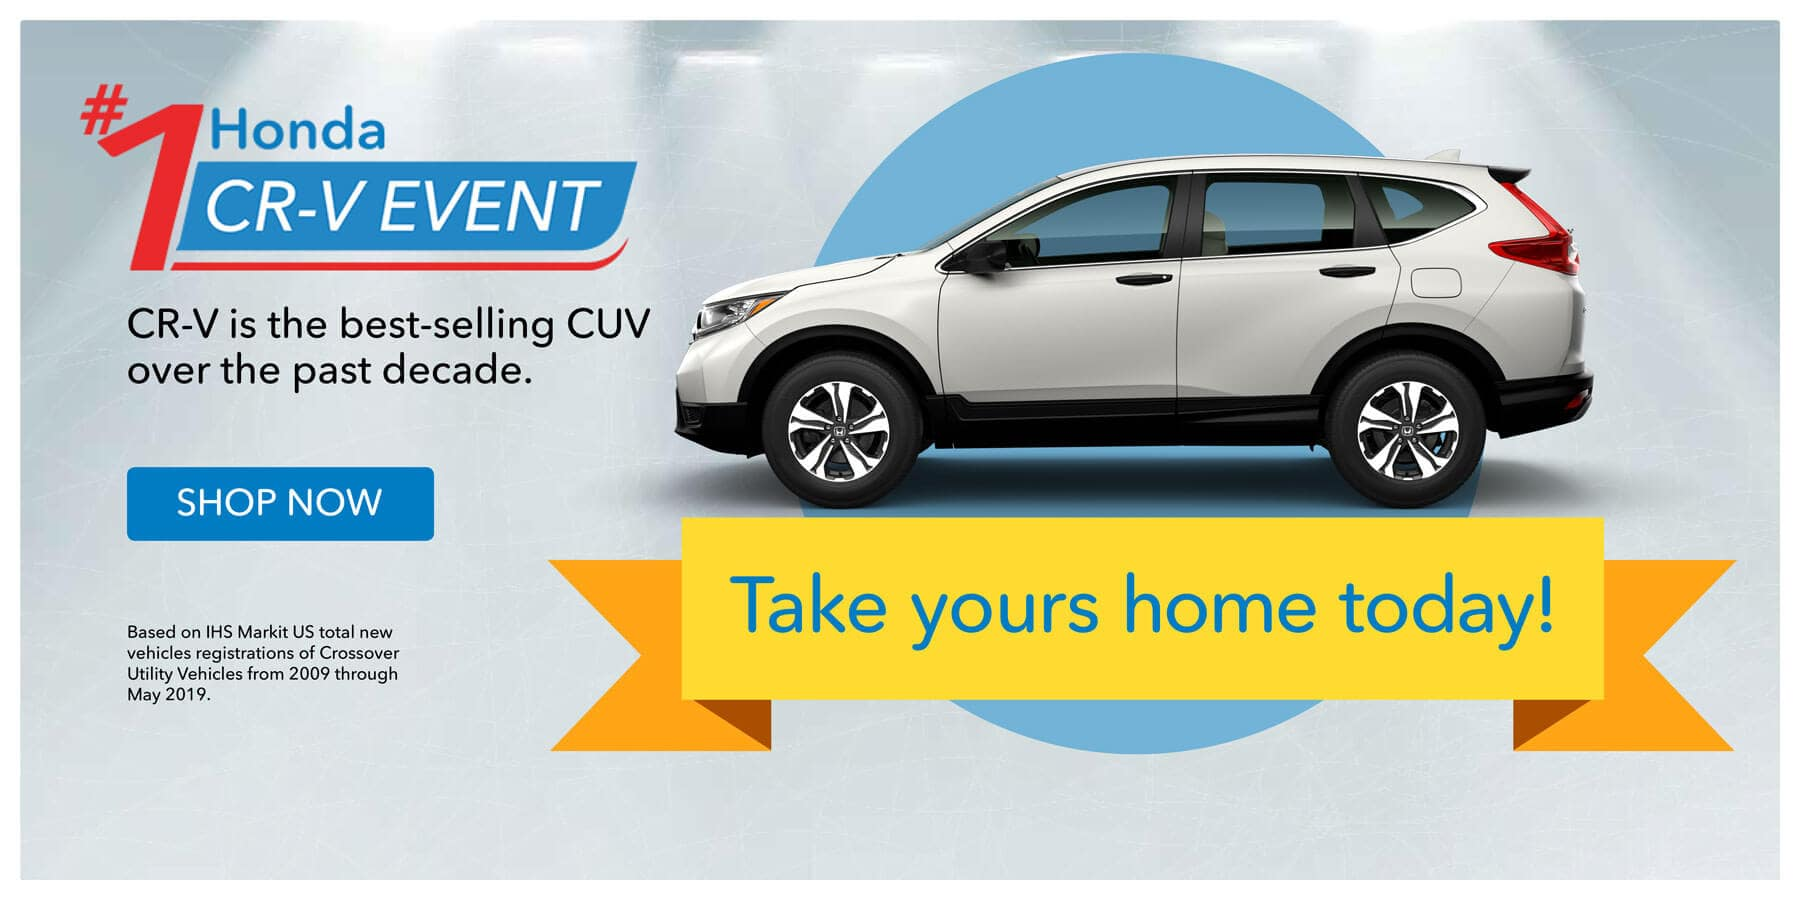 #1 Honda CR-V Event Hampton Roads Honda Dealers HP Slide